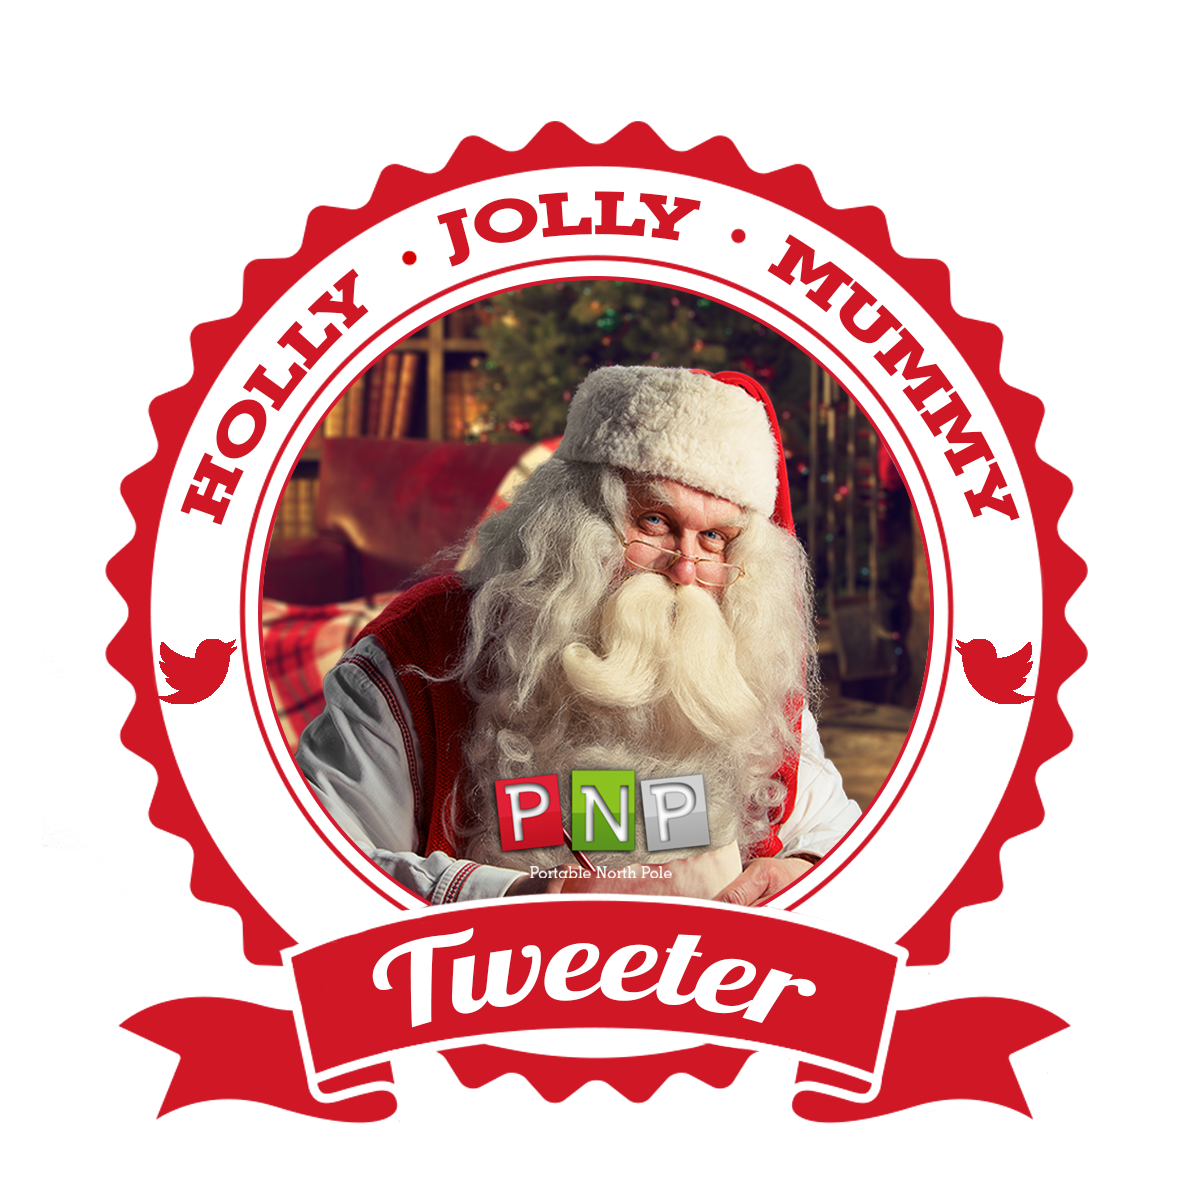 I'm A Holly Jolly Mummy PNP Tweeter